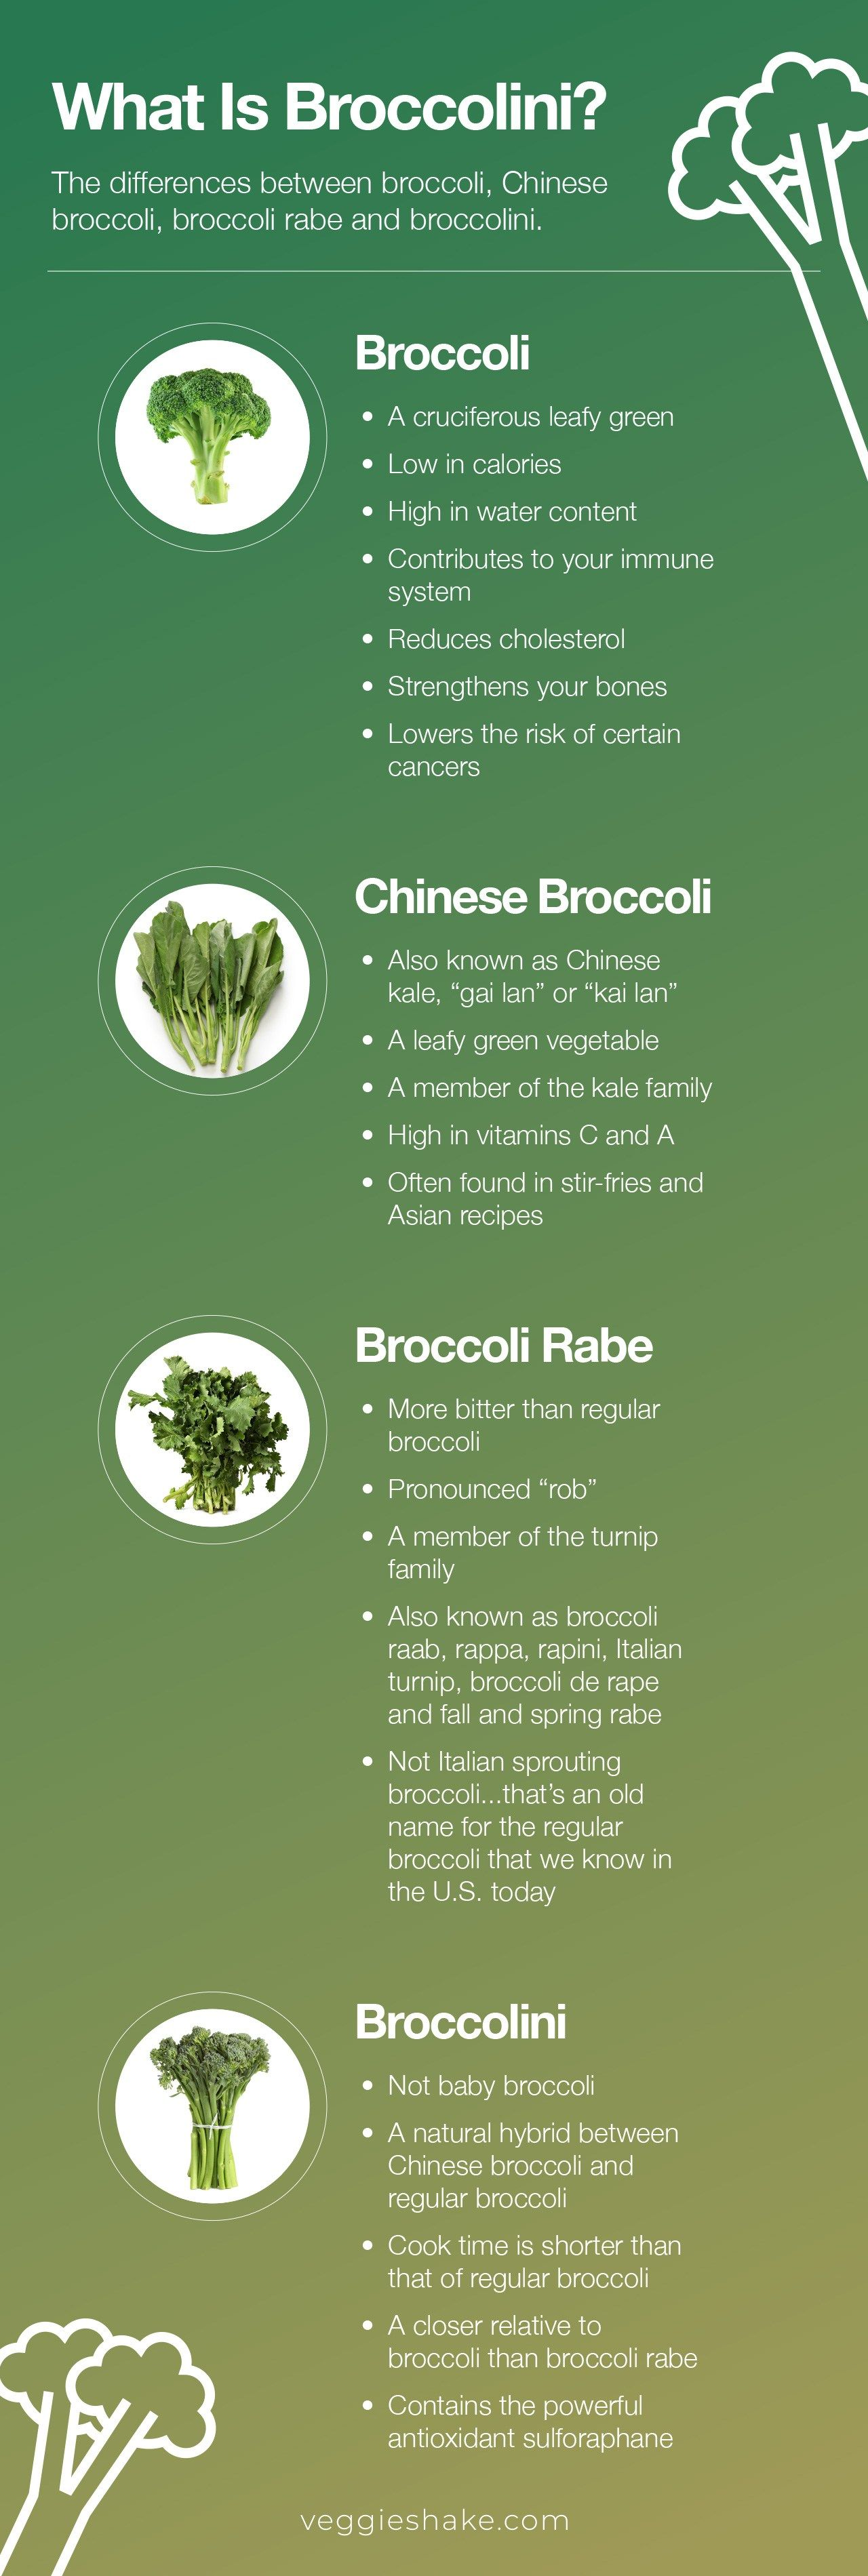 What is Broccolini